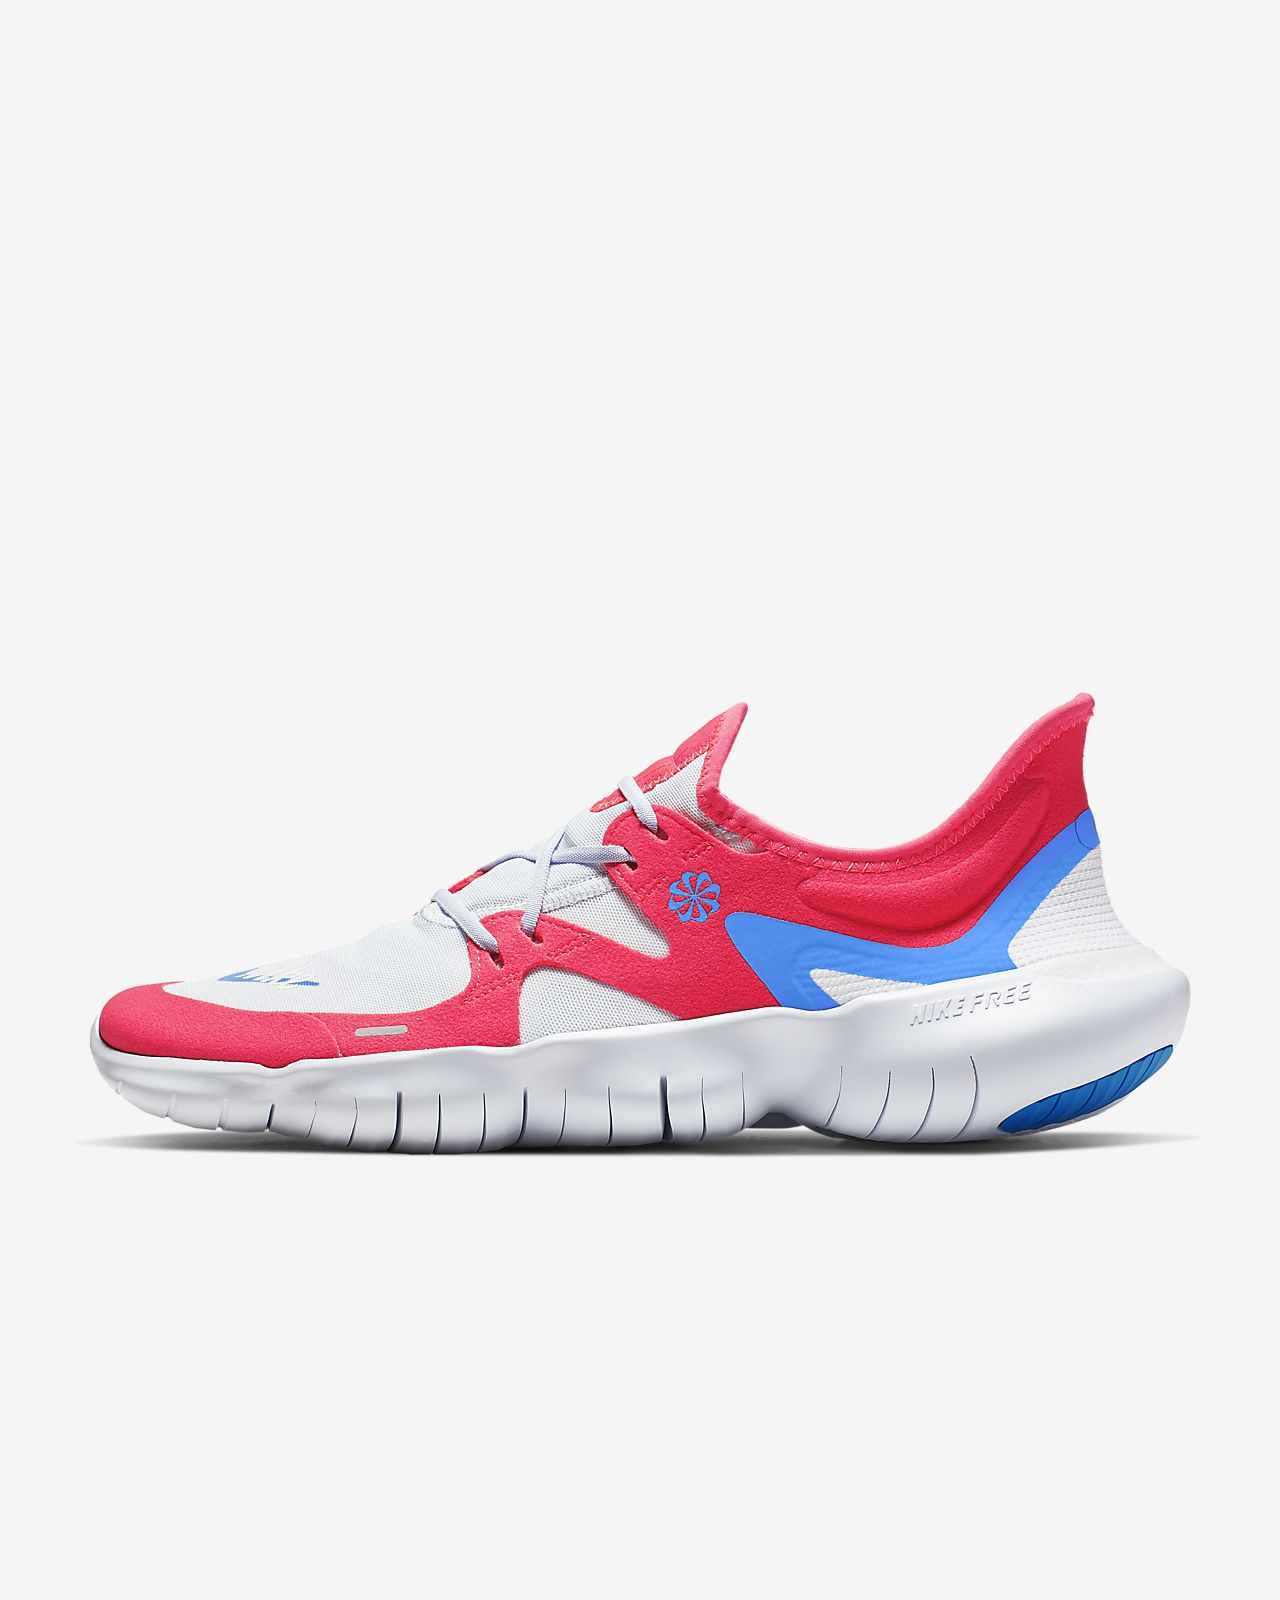 Nike Air Max TN White And Red,nike free run 5.0,Exclusive